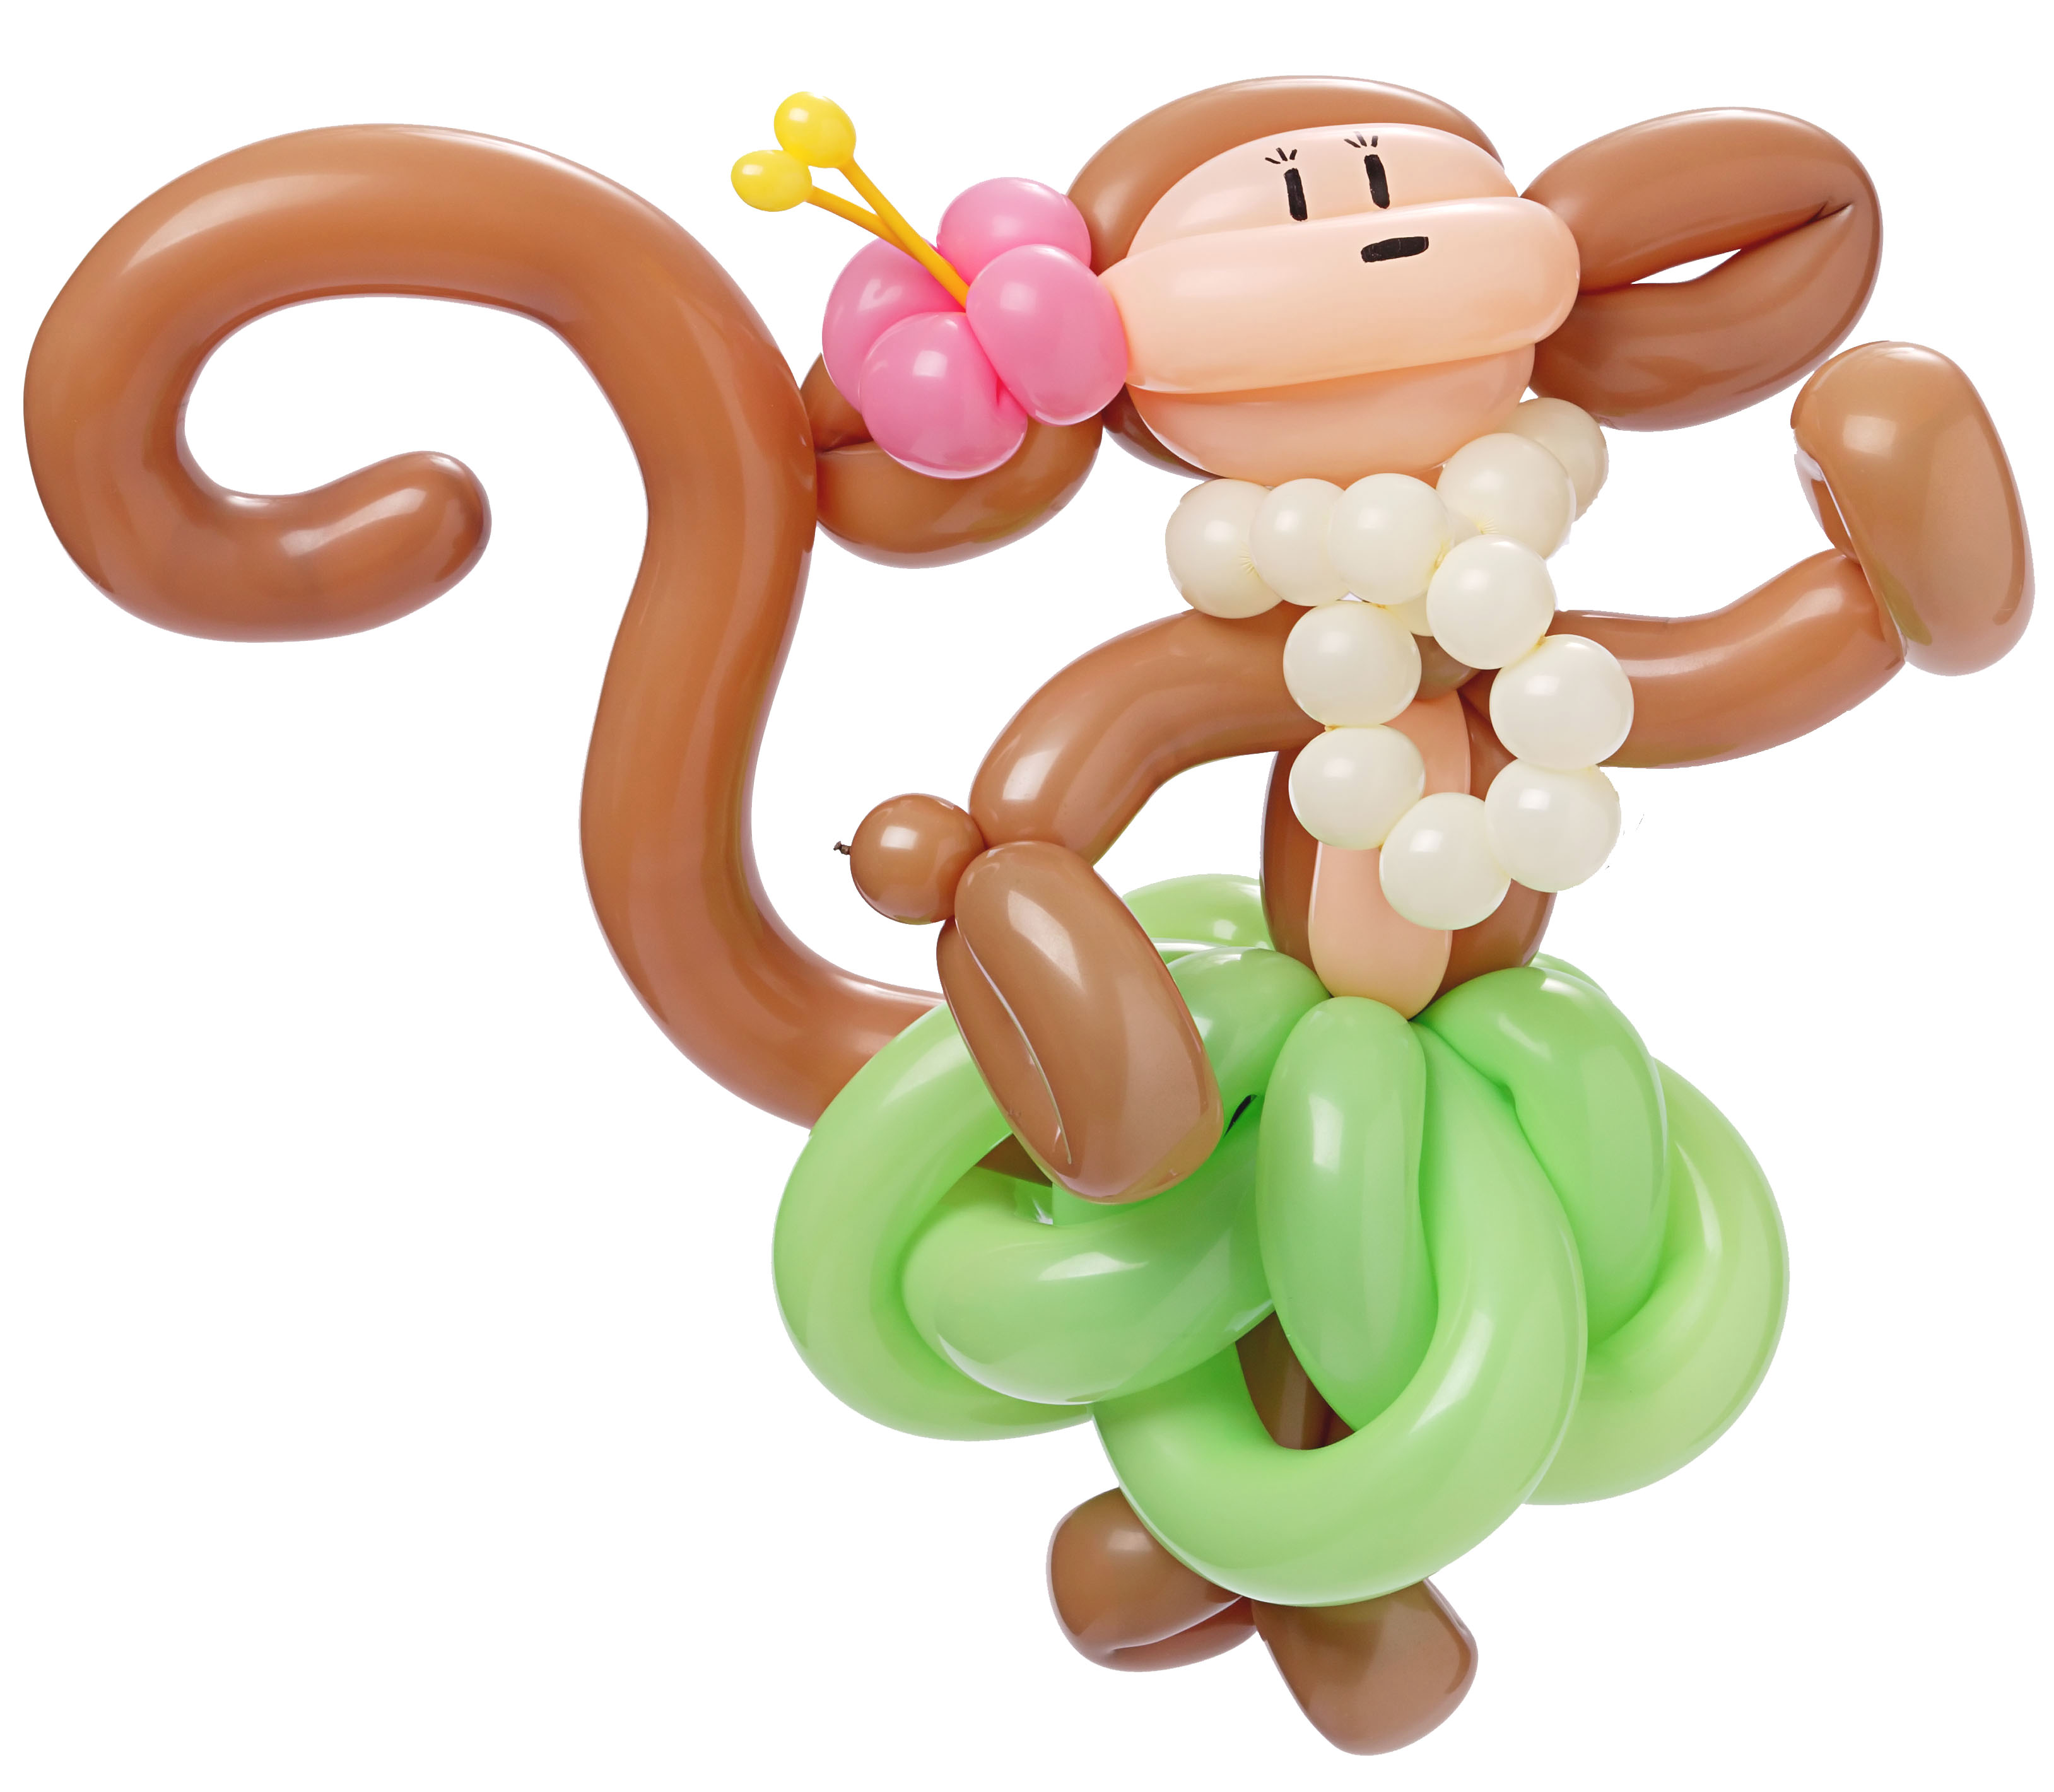 Balloon Pop Monkey Game Balloon Monkey Games Play